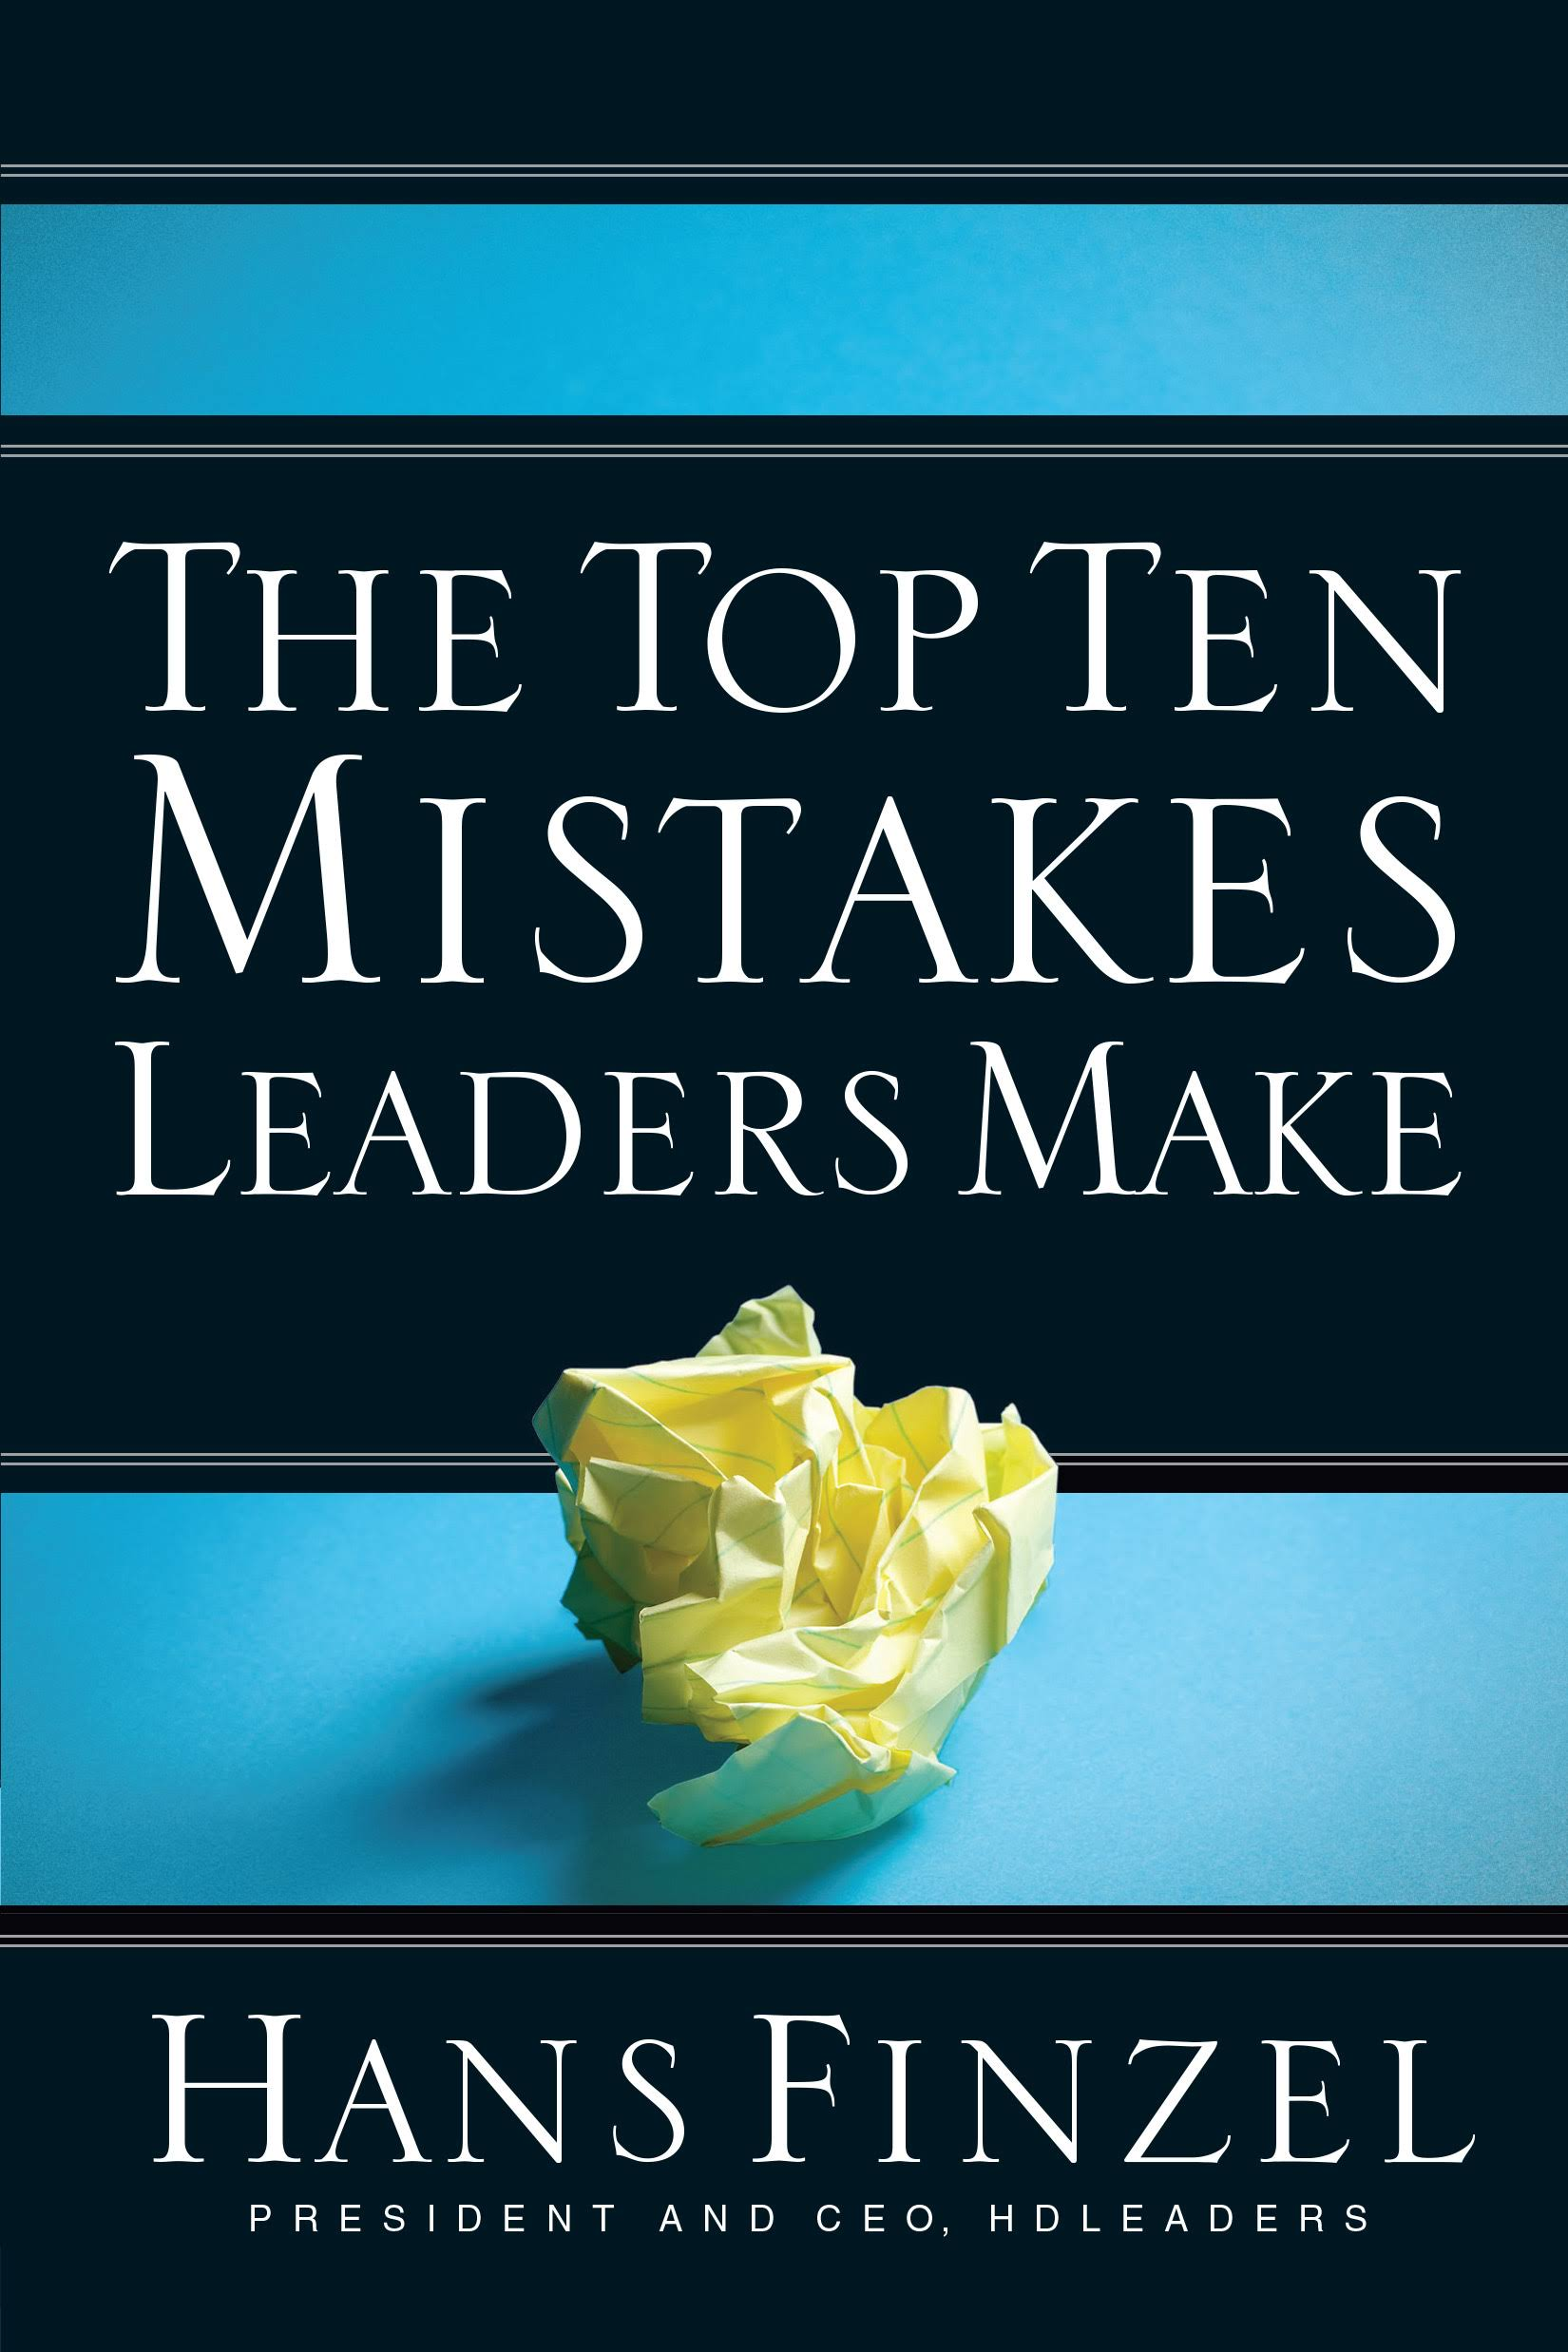 The Top Ten Mistakes Leaders Make [Book Summary]